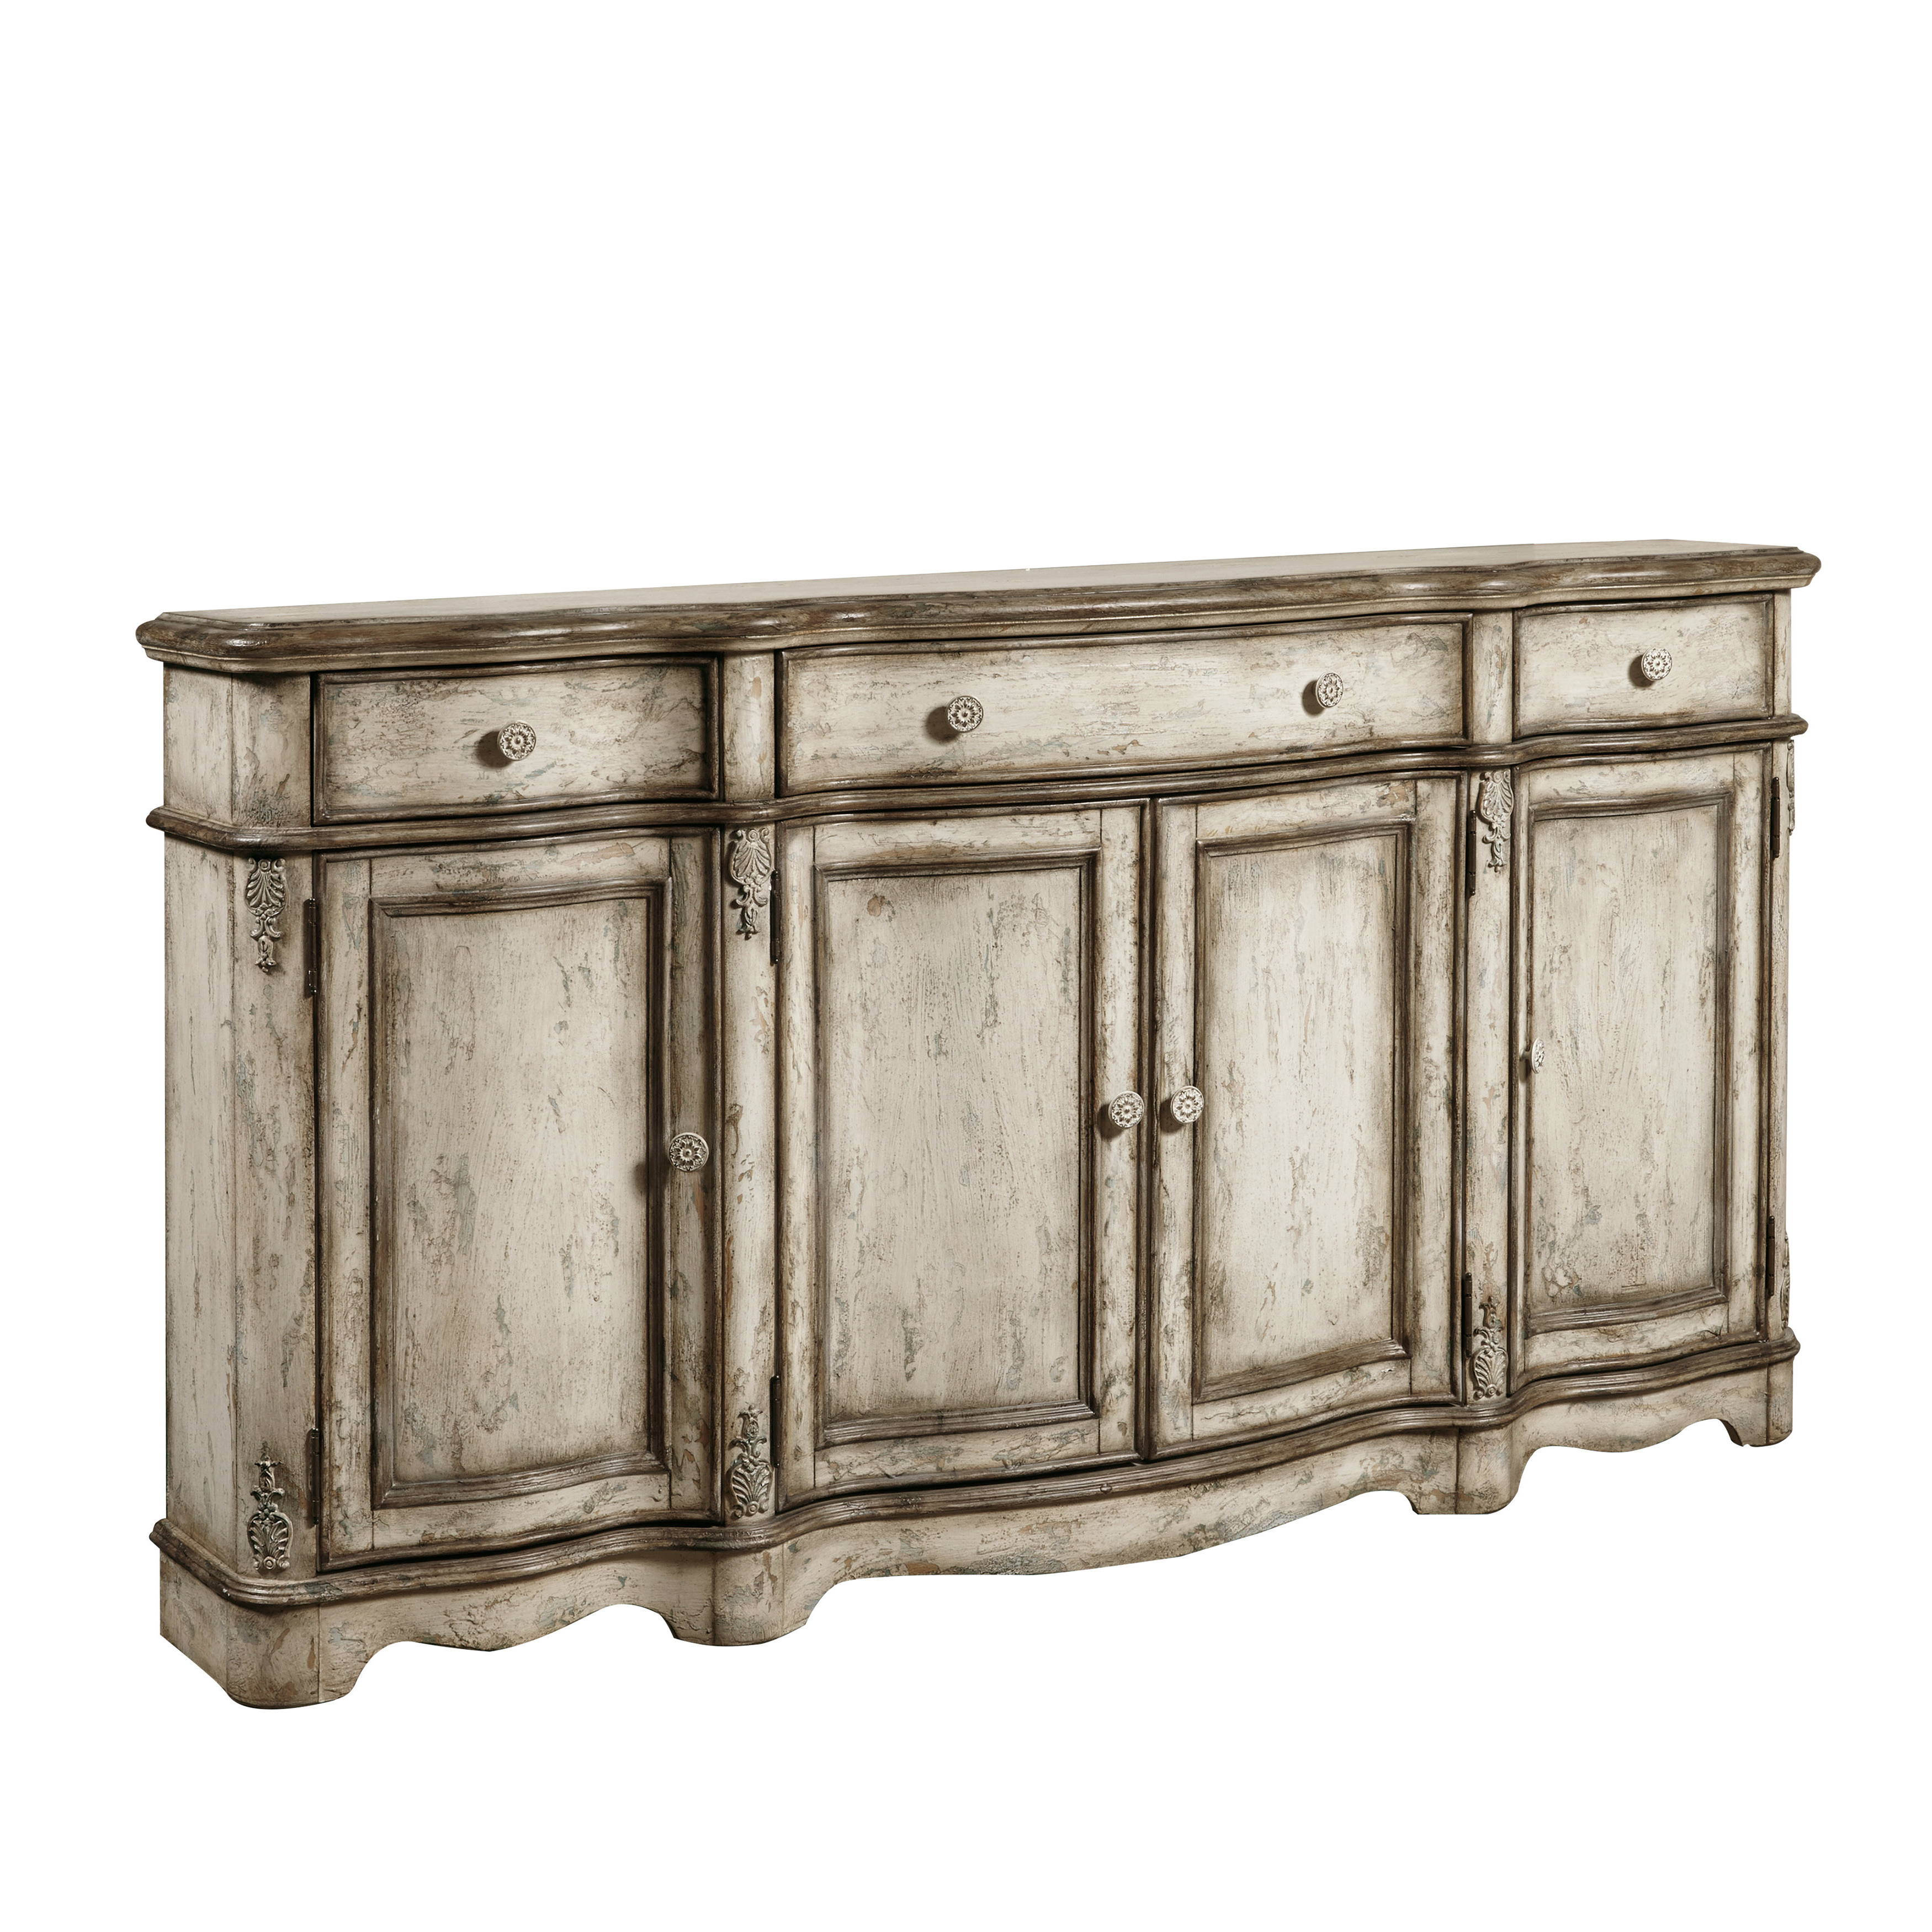 Farmhouse & Rustic Sideboards & Buffets | Birch Lane Inside Courtdale Sideboards (View 11 of 20)